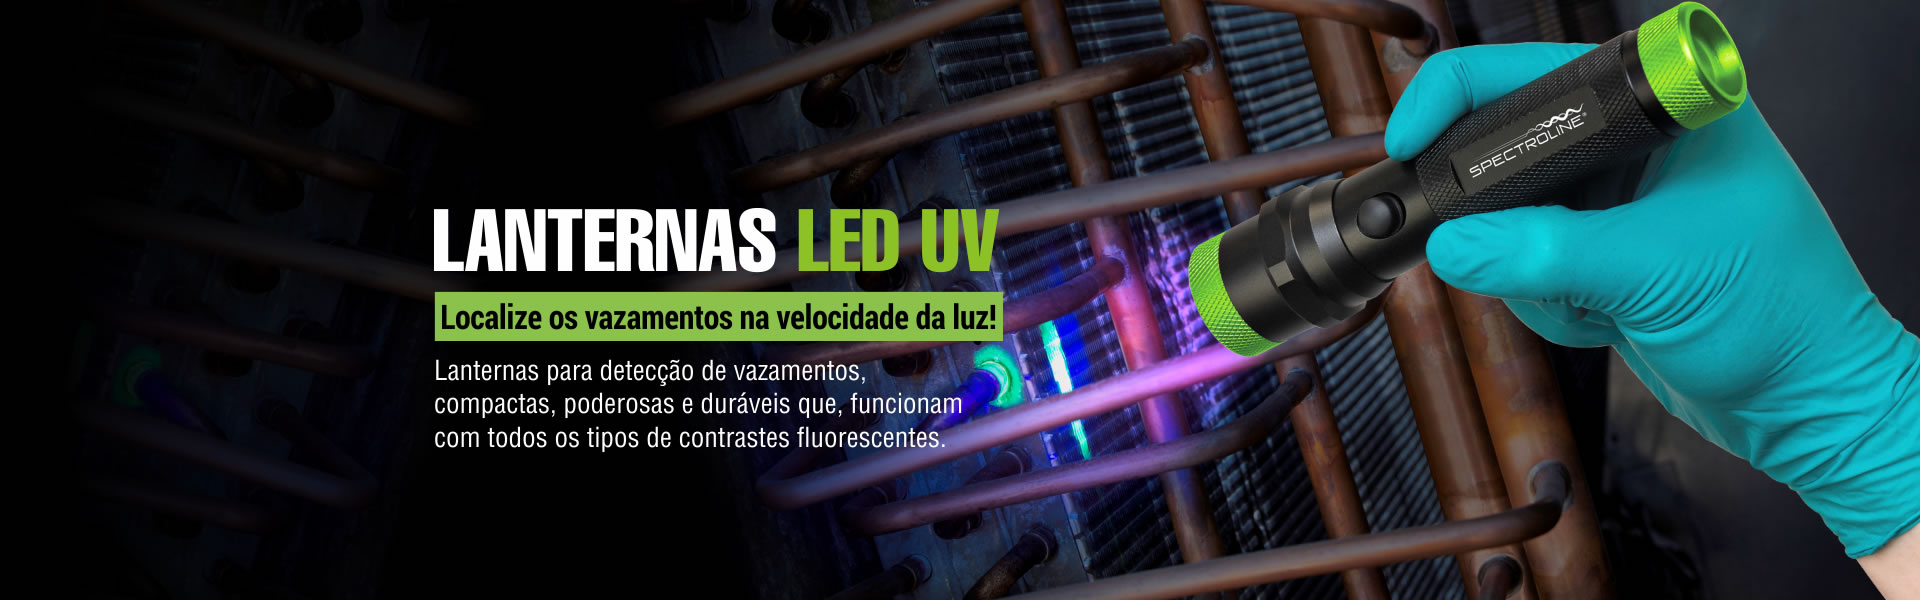 Lanternas LED UV